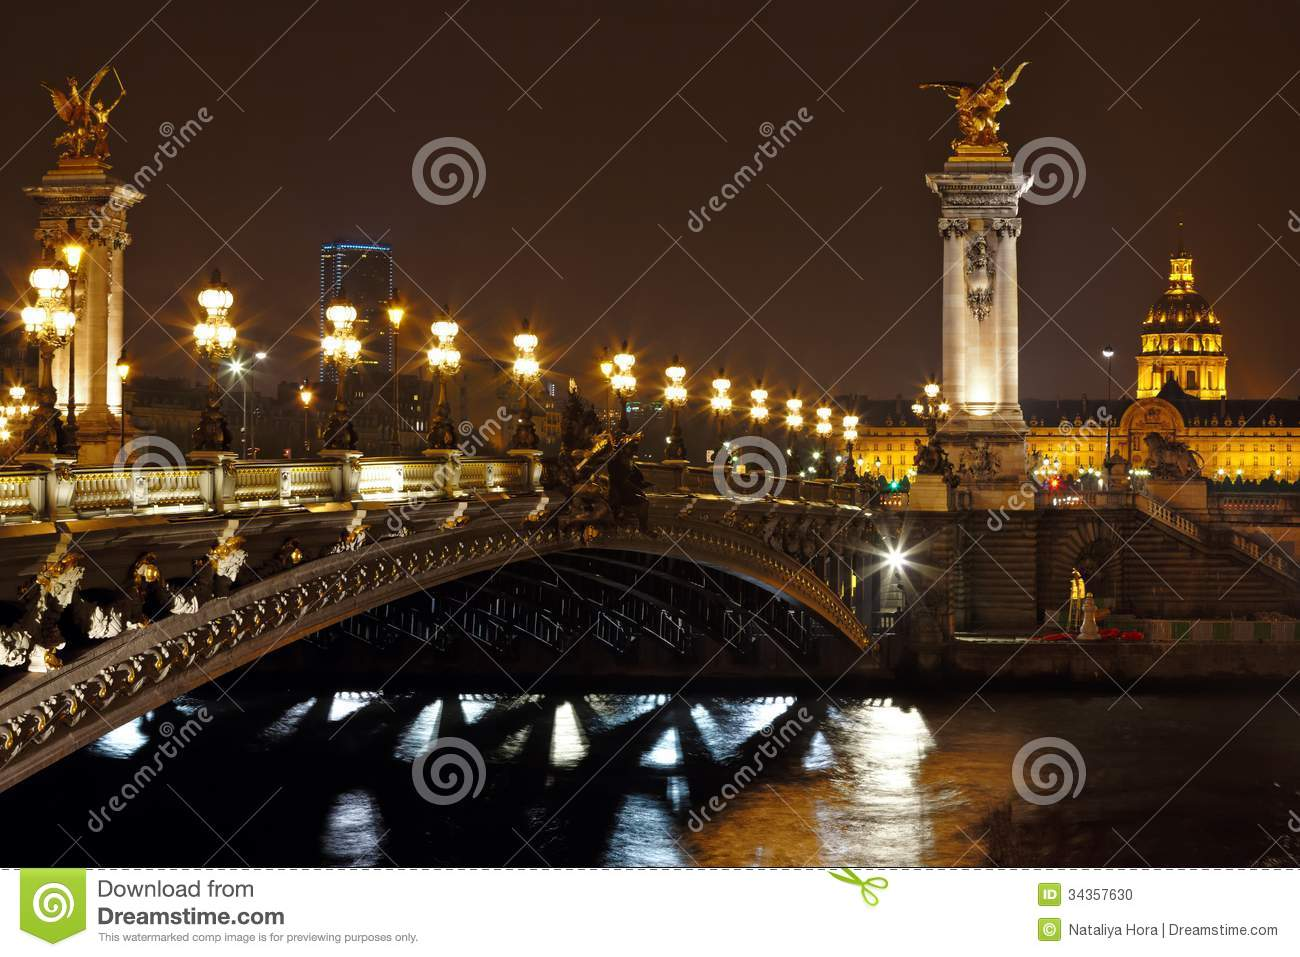 The alexander iii bridge at night in paris france stock for Paris night time